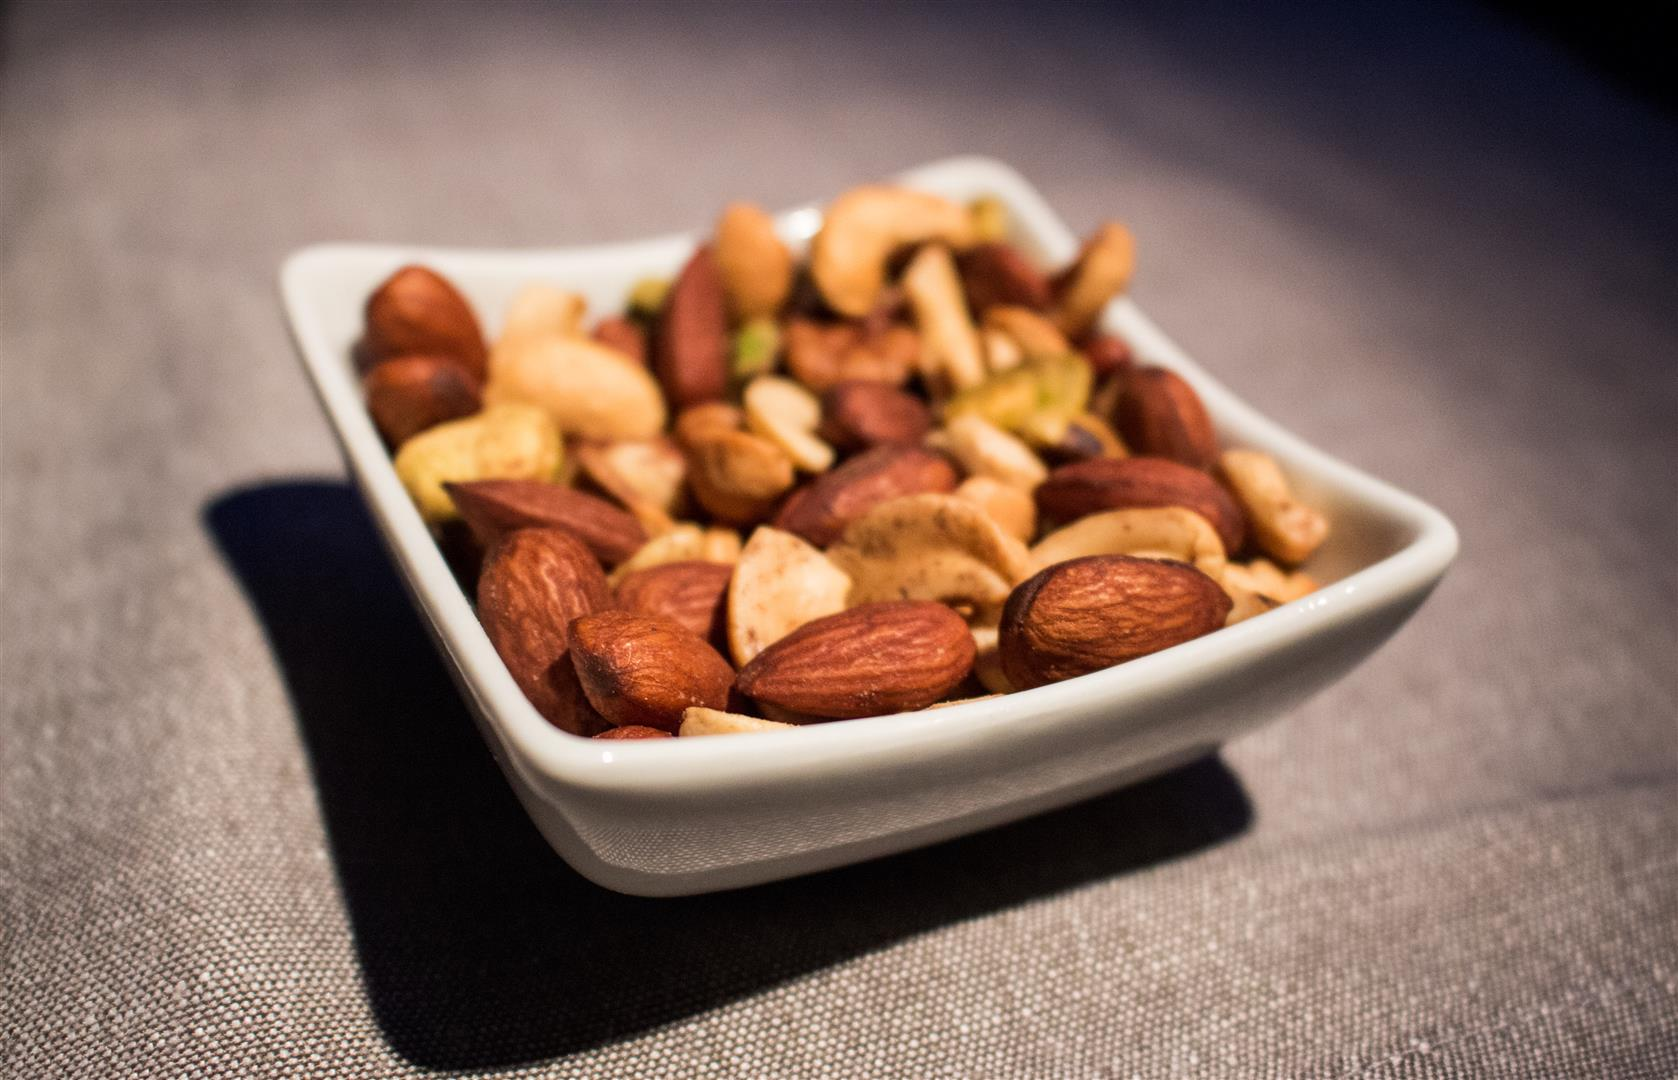 Salted Nuts are served warm, and I find they're a bit more tender that way.